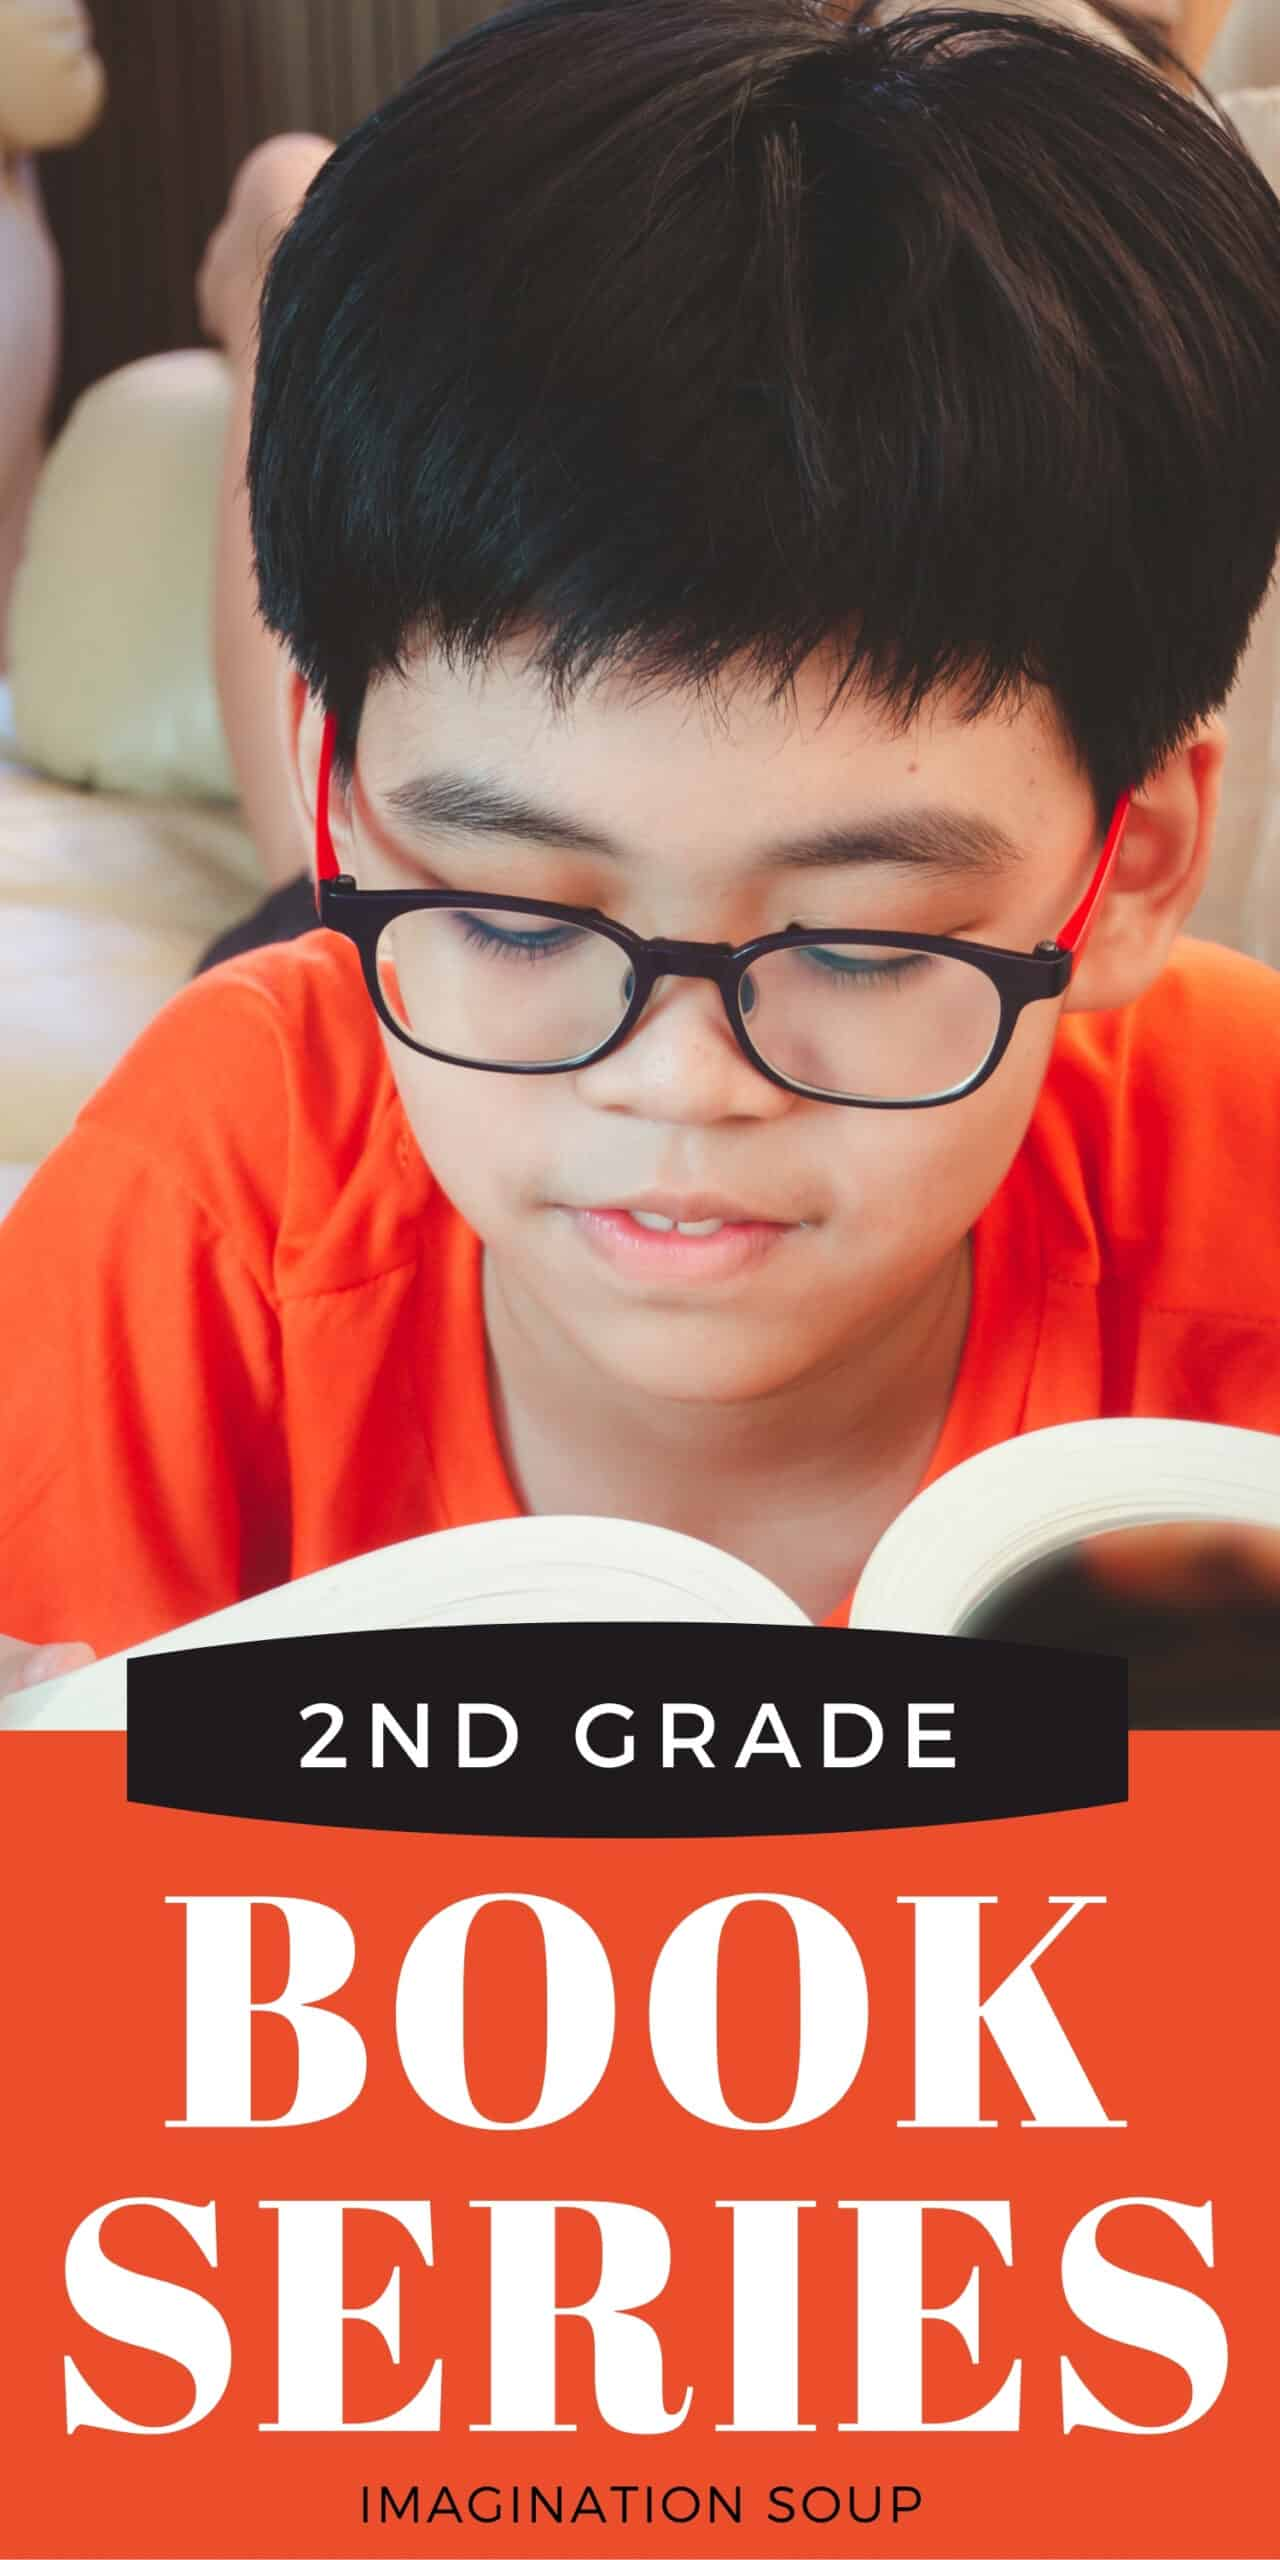 Best book series for 2nd grade